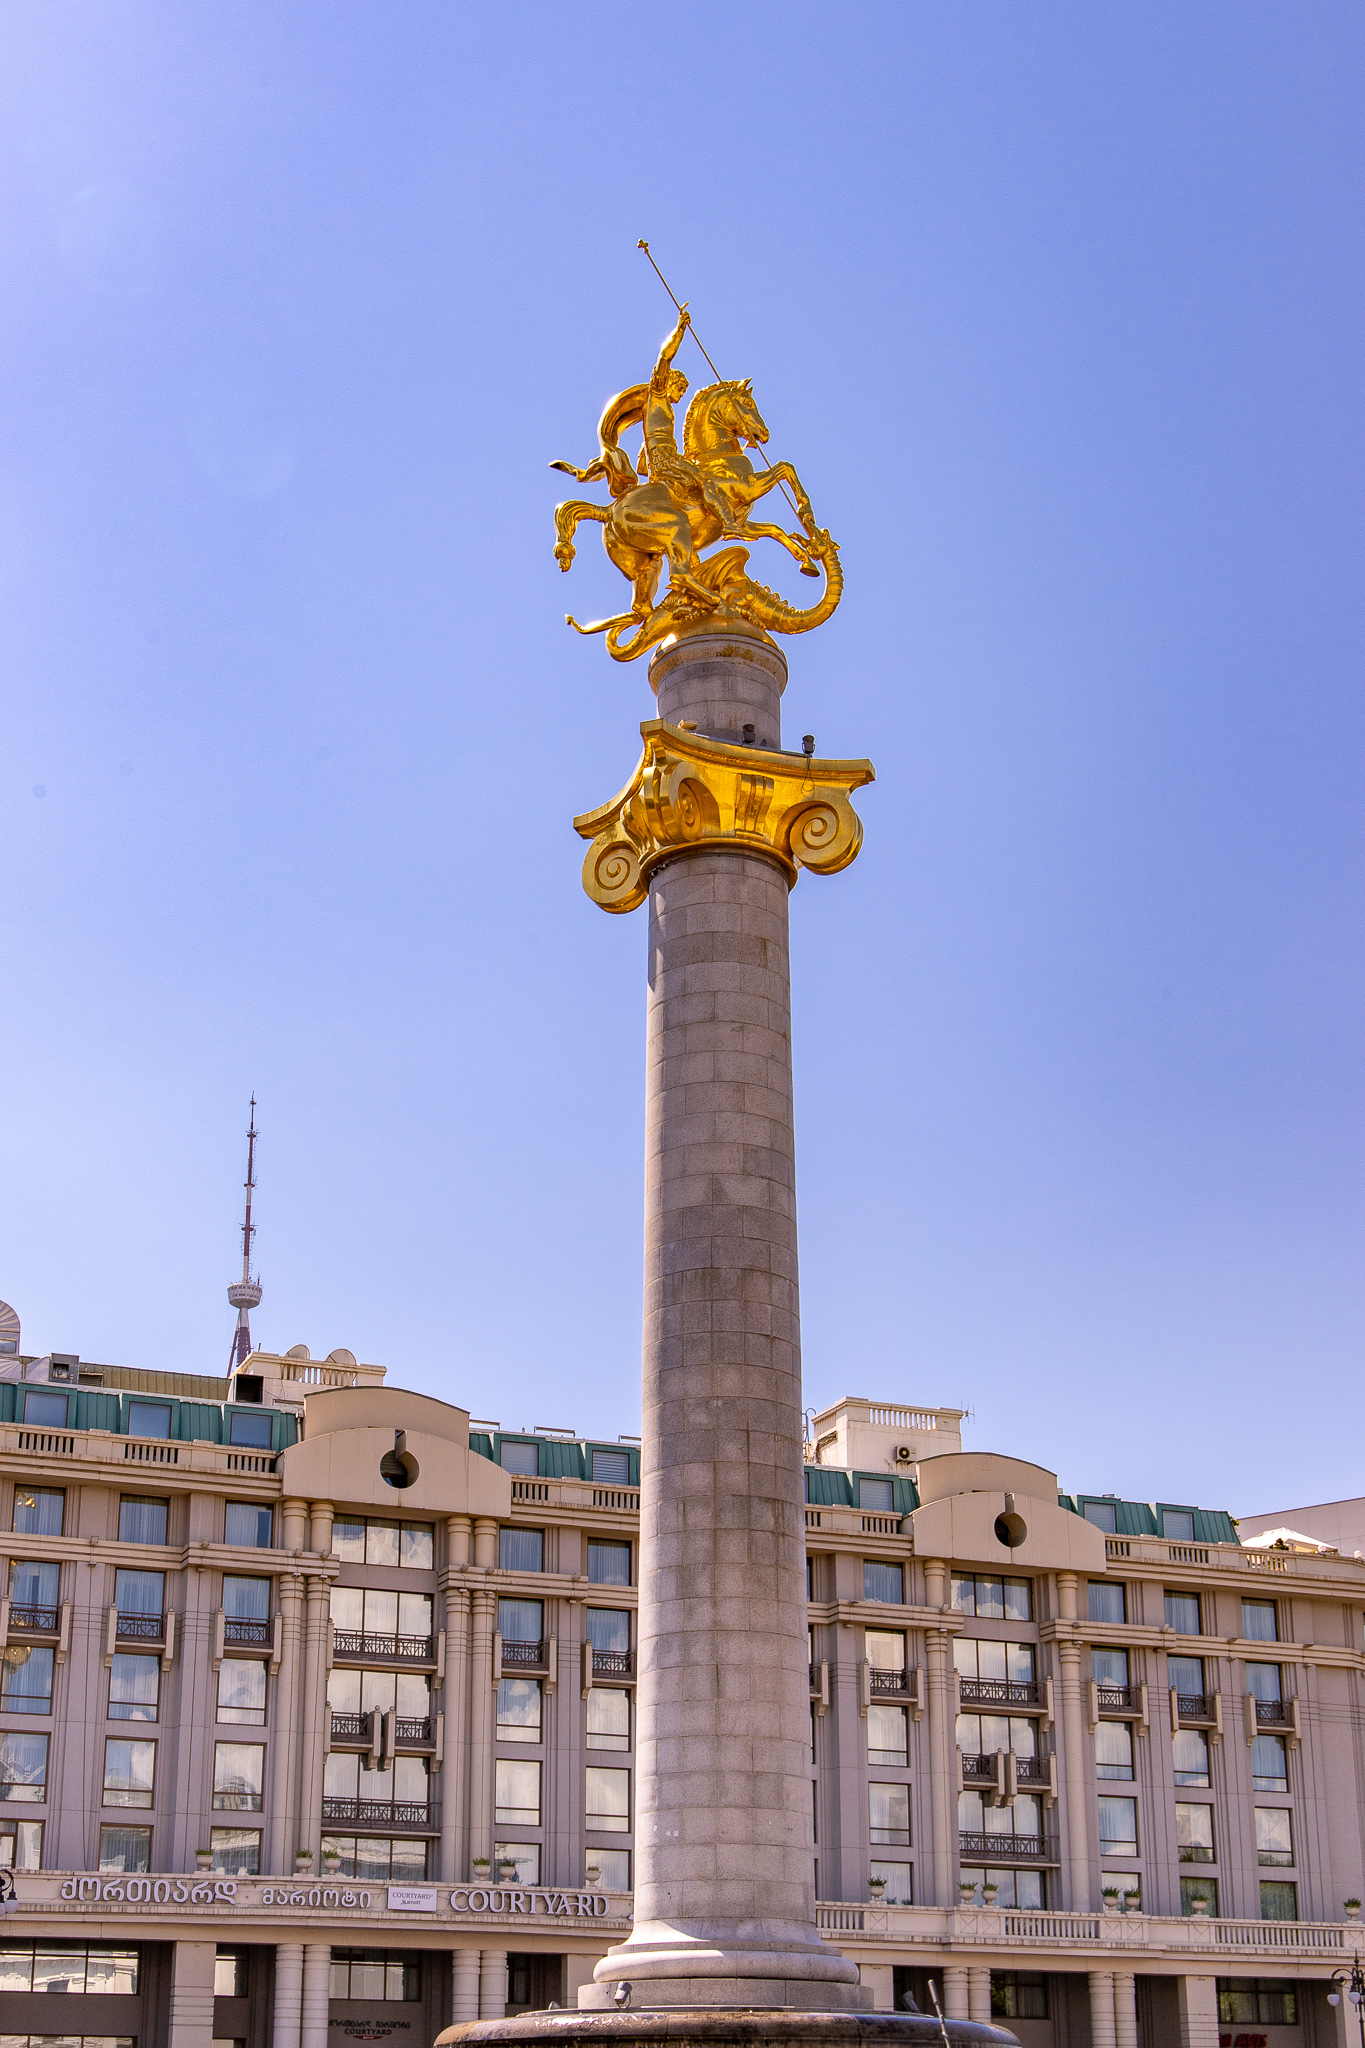 The centre of Freedom Square